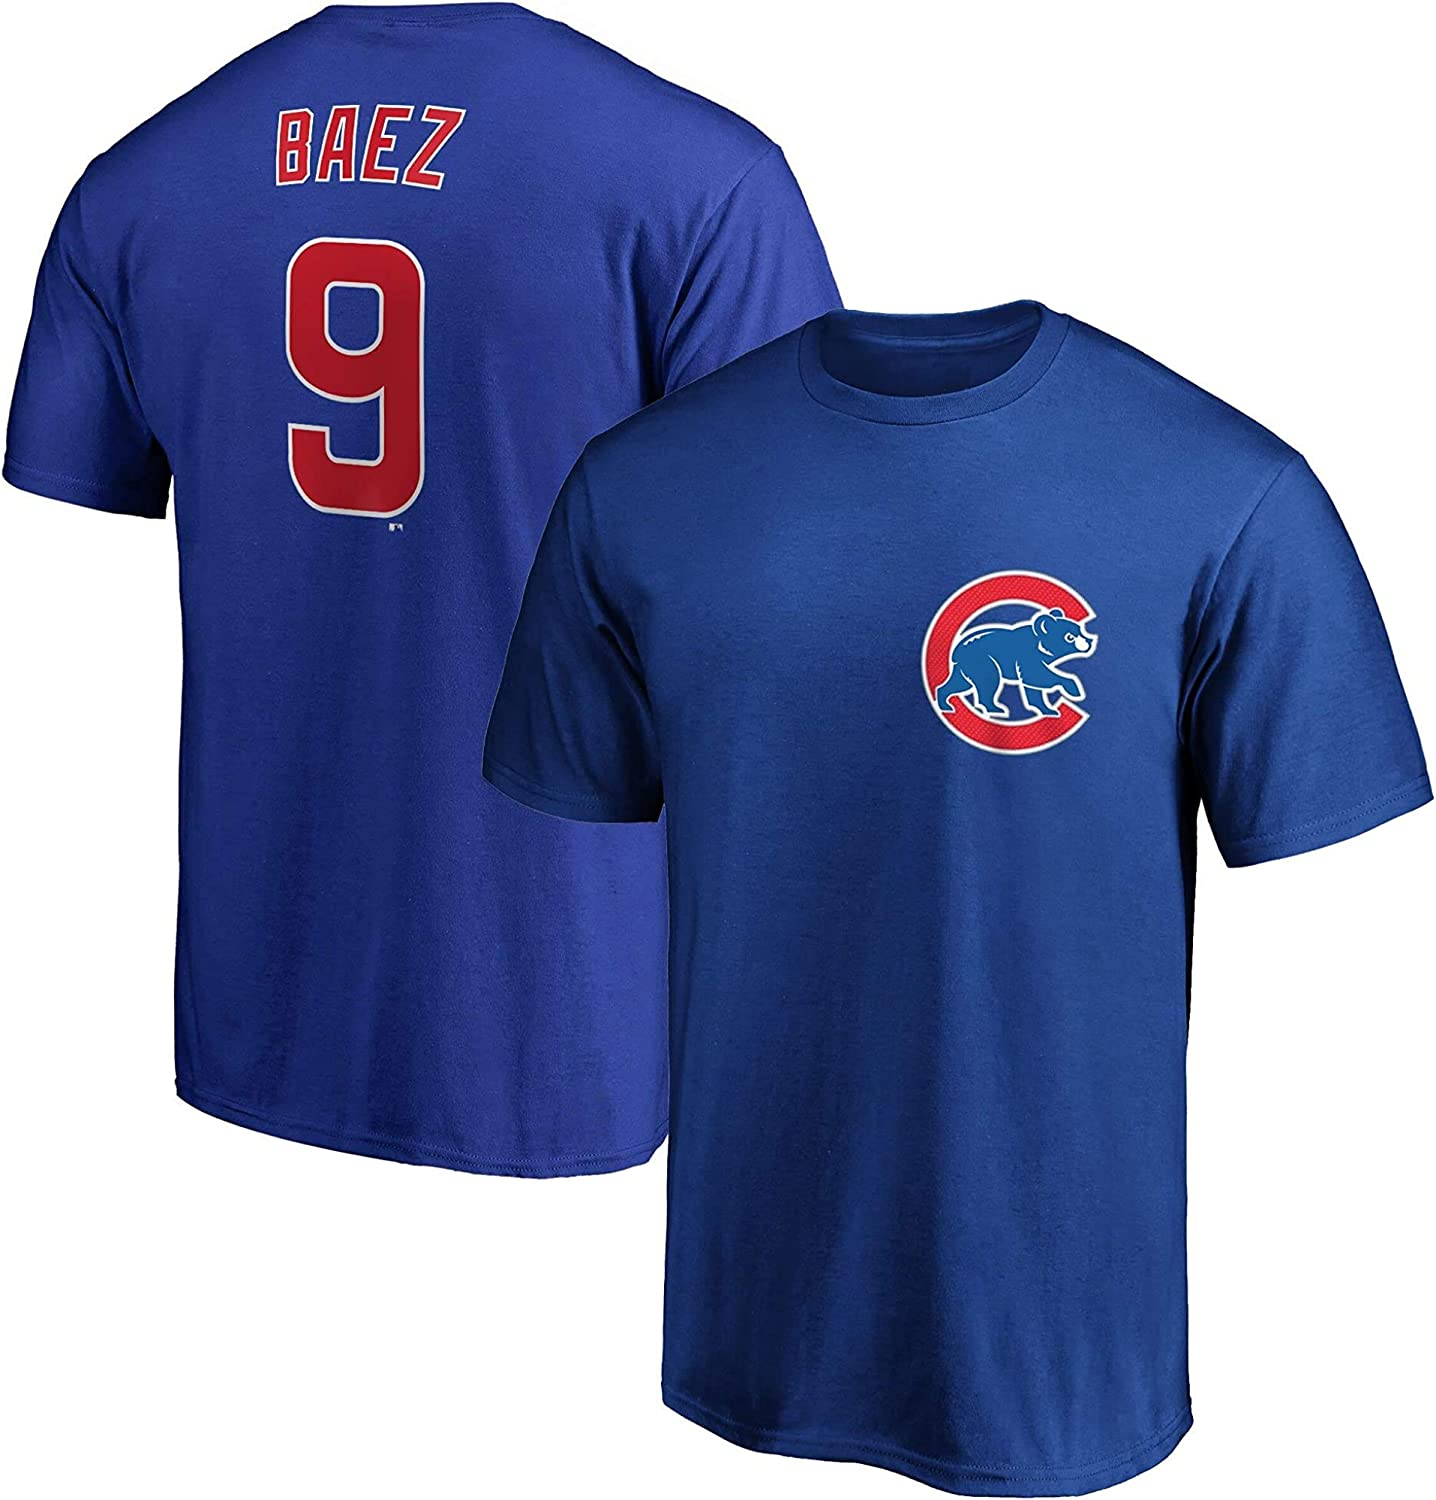 MLB Boys Youth 8-20 Team Color Official Player Name /& Number T-Shirt